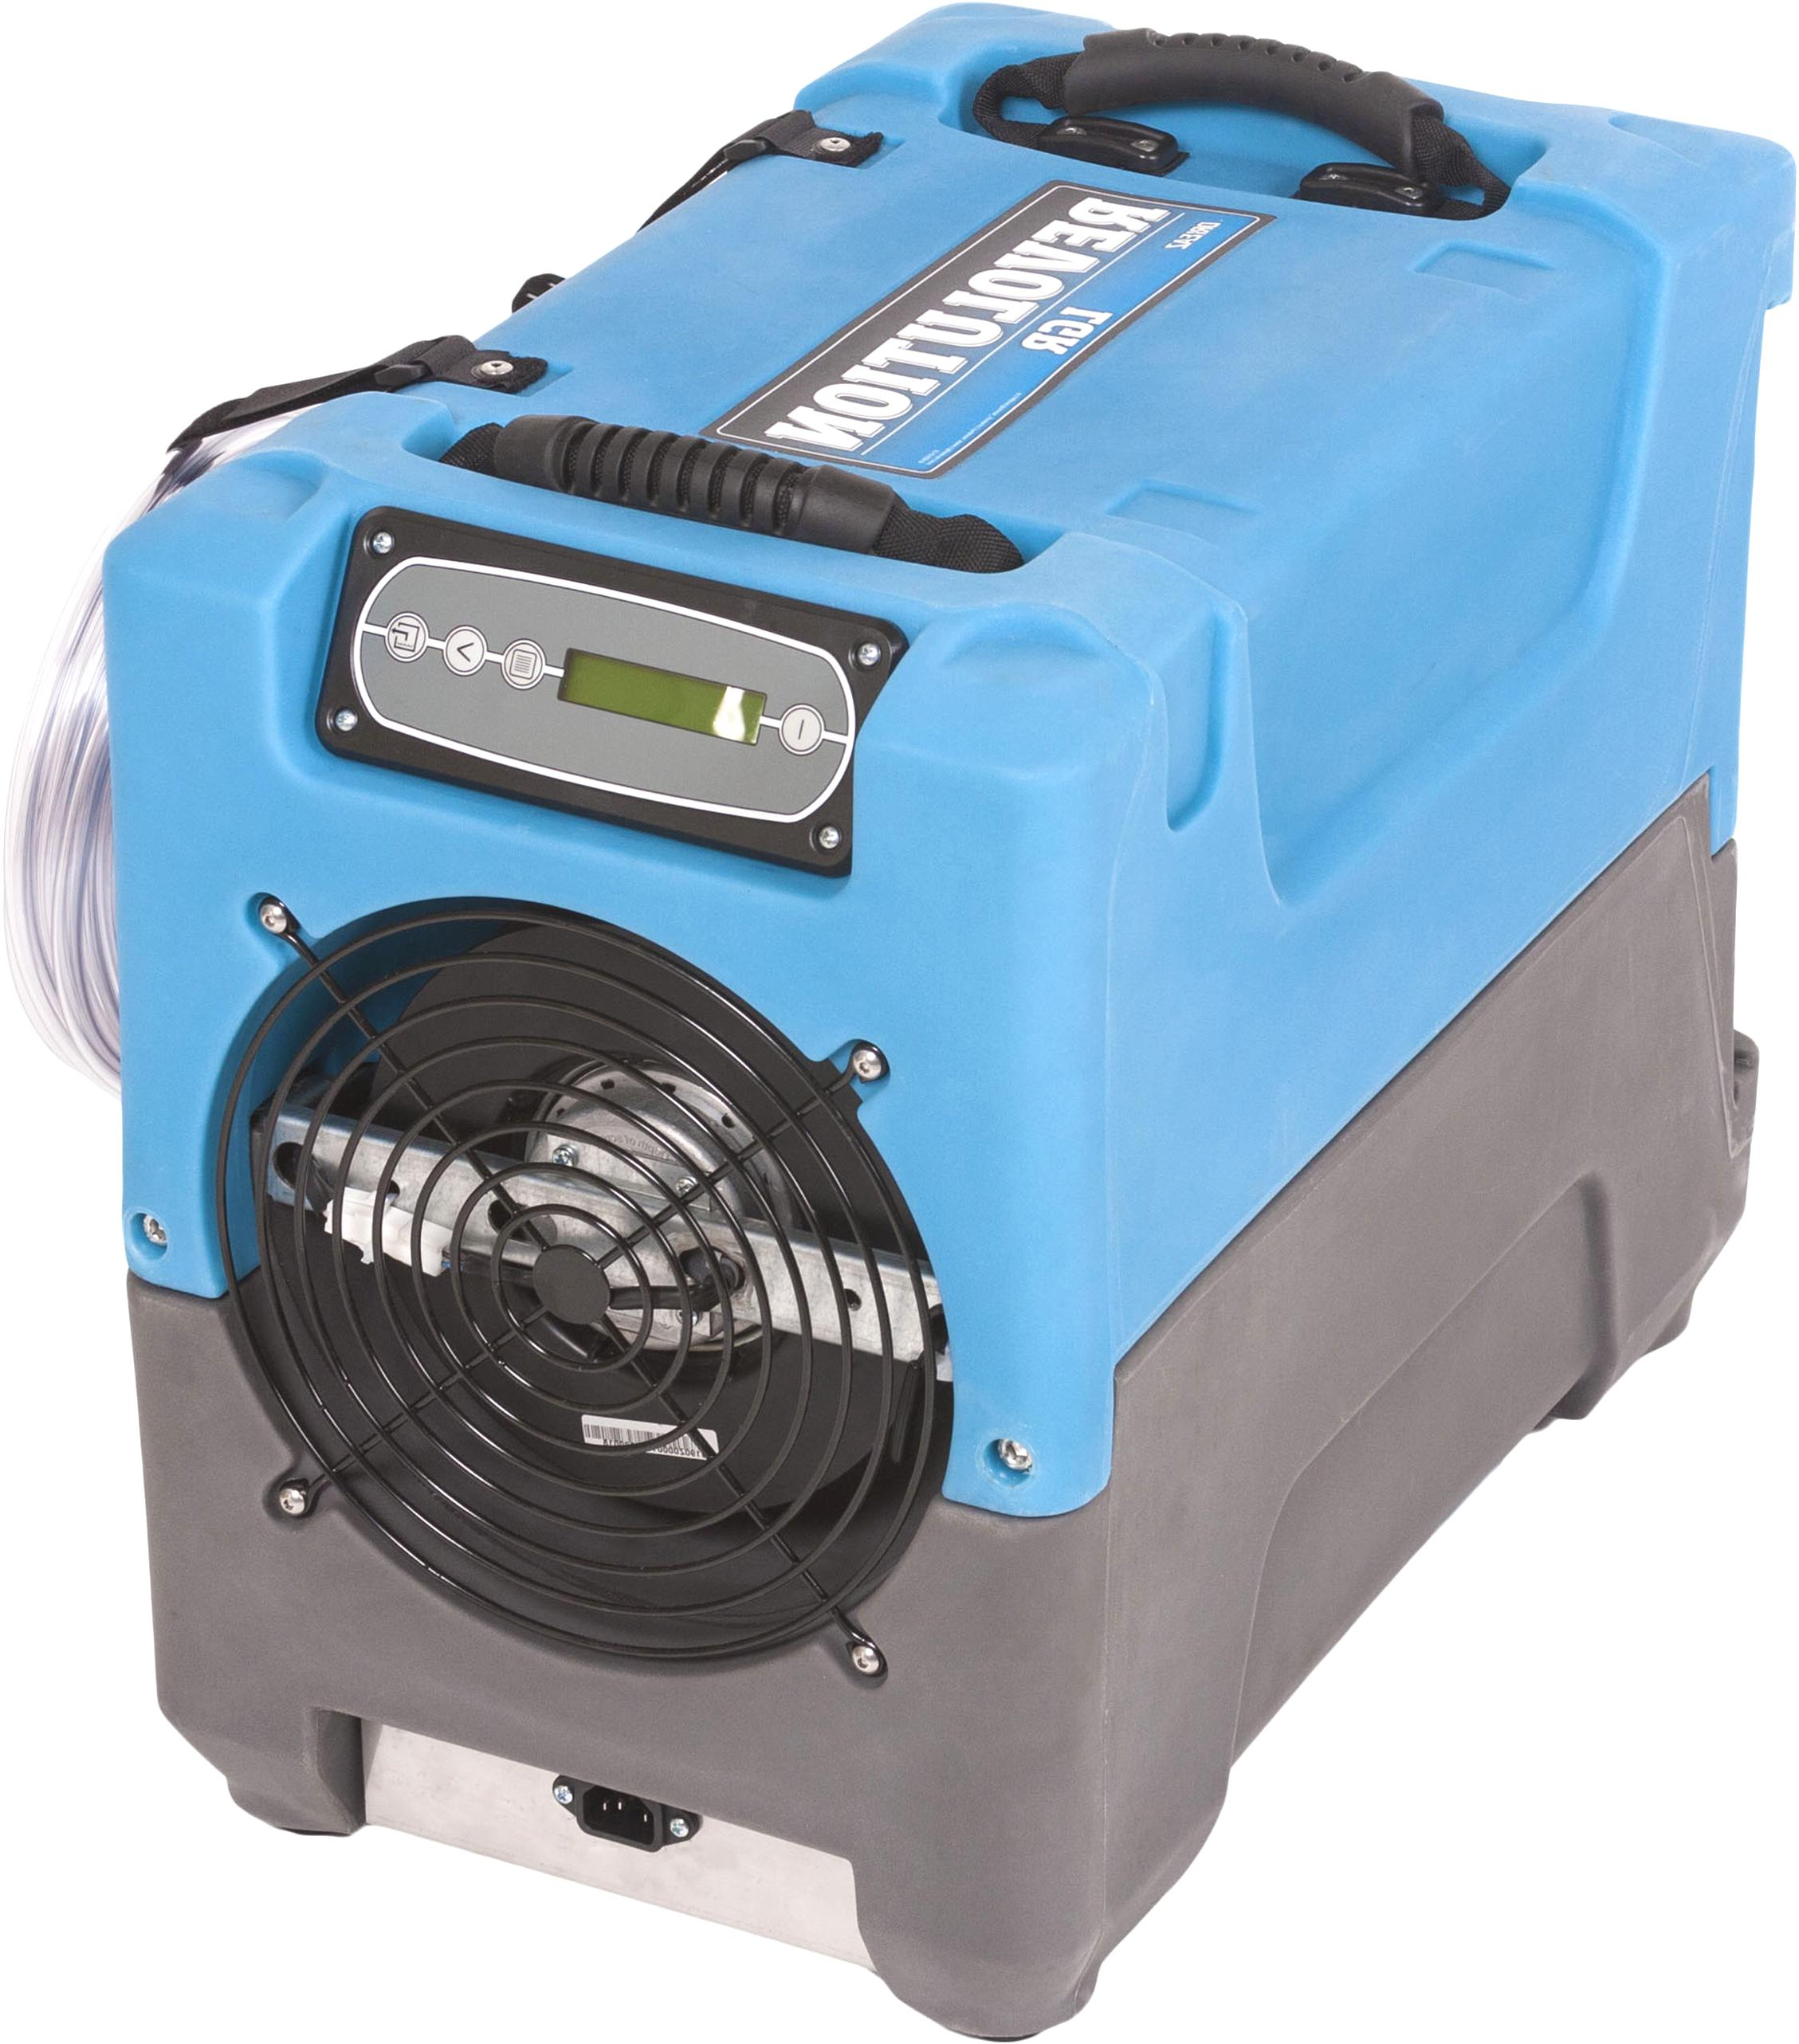 lgr dehumidifier for sale